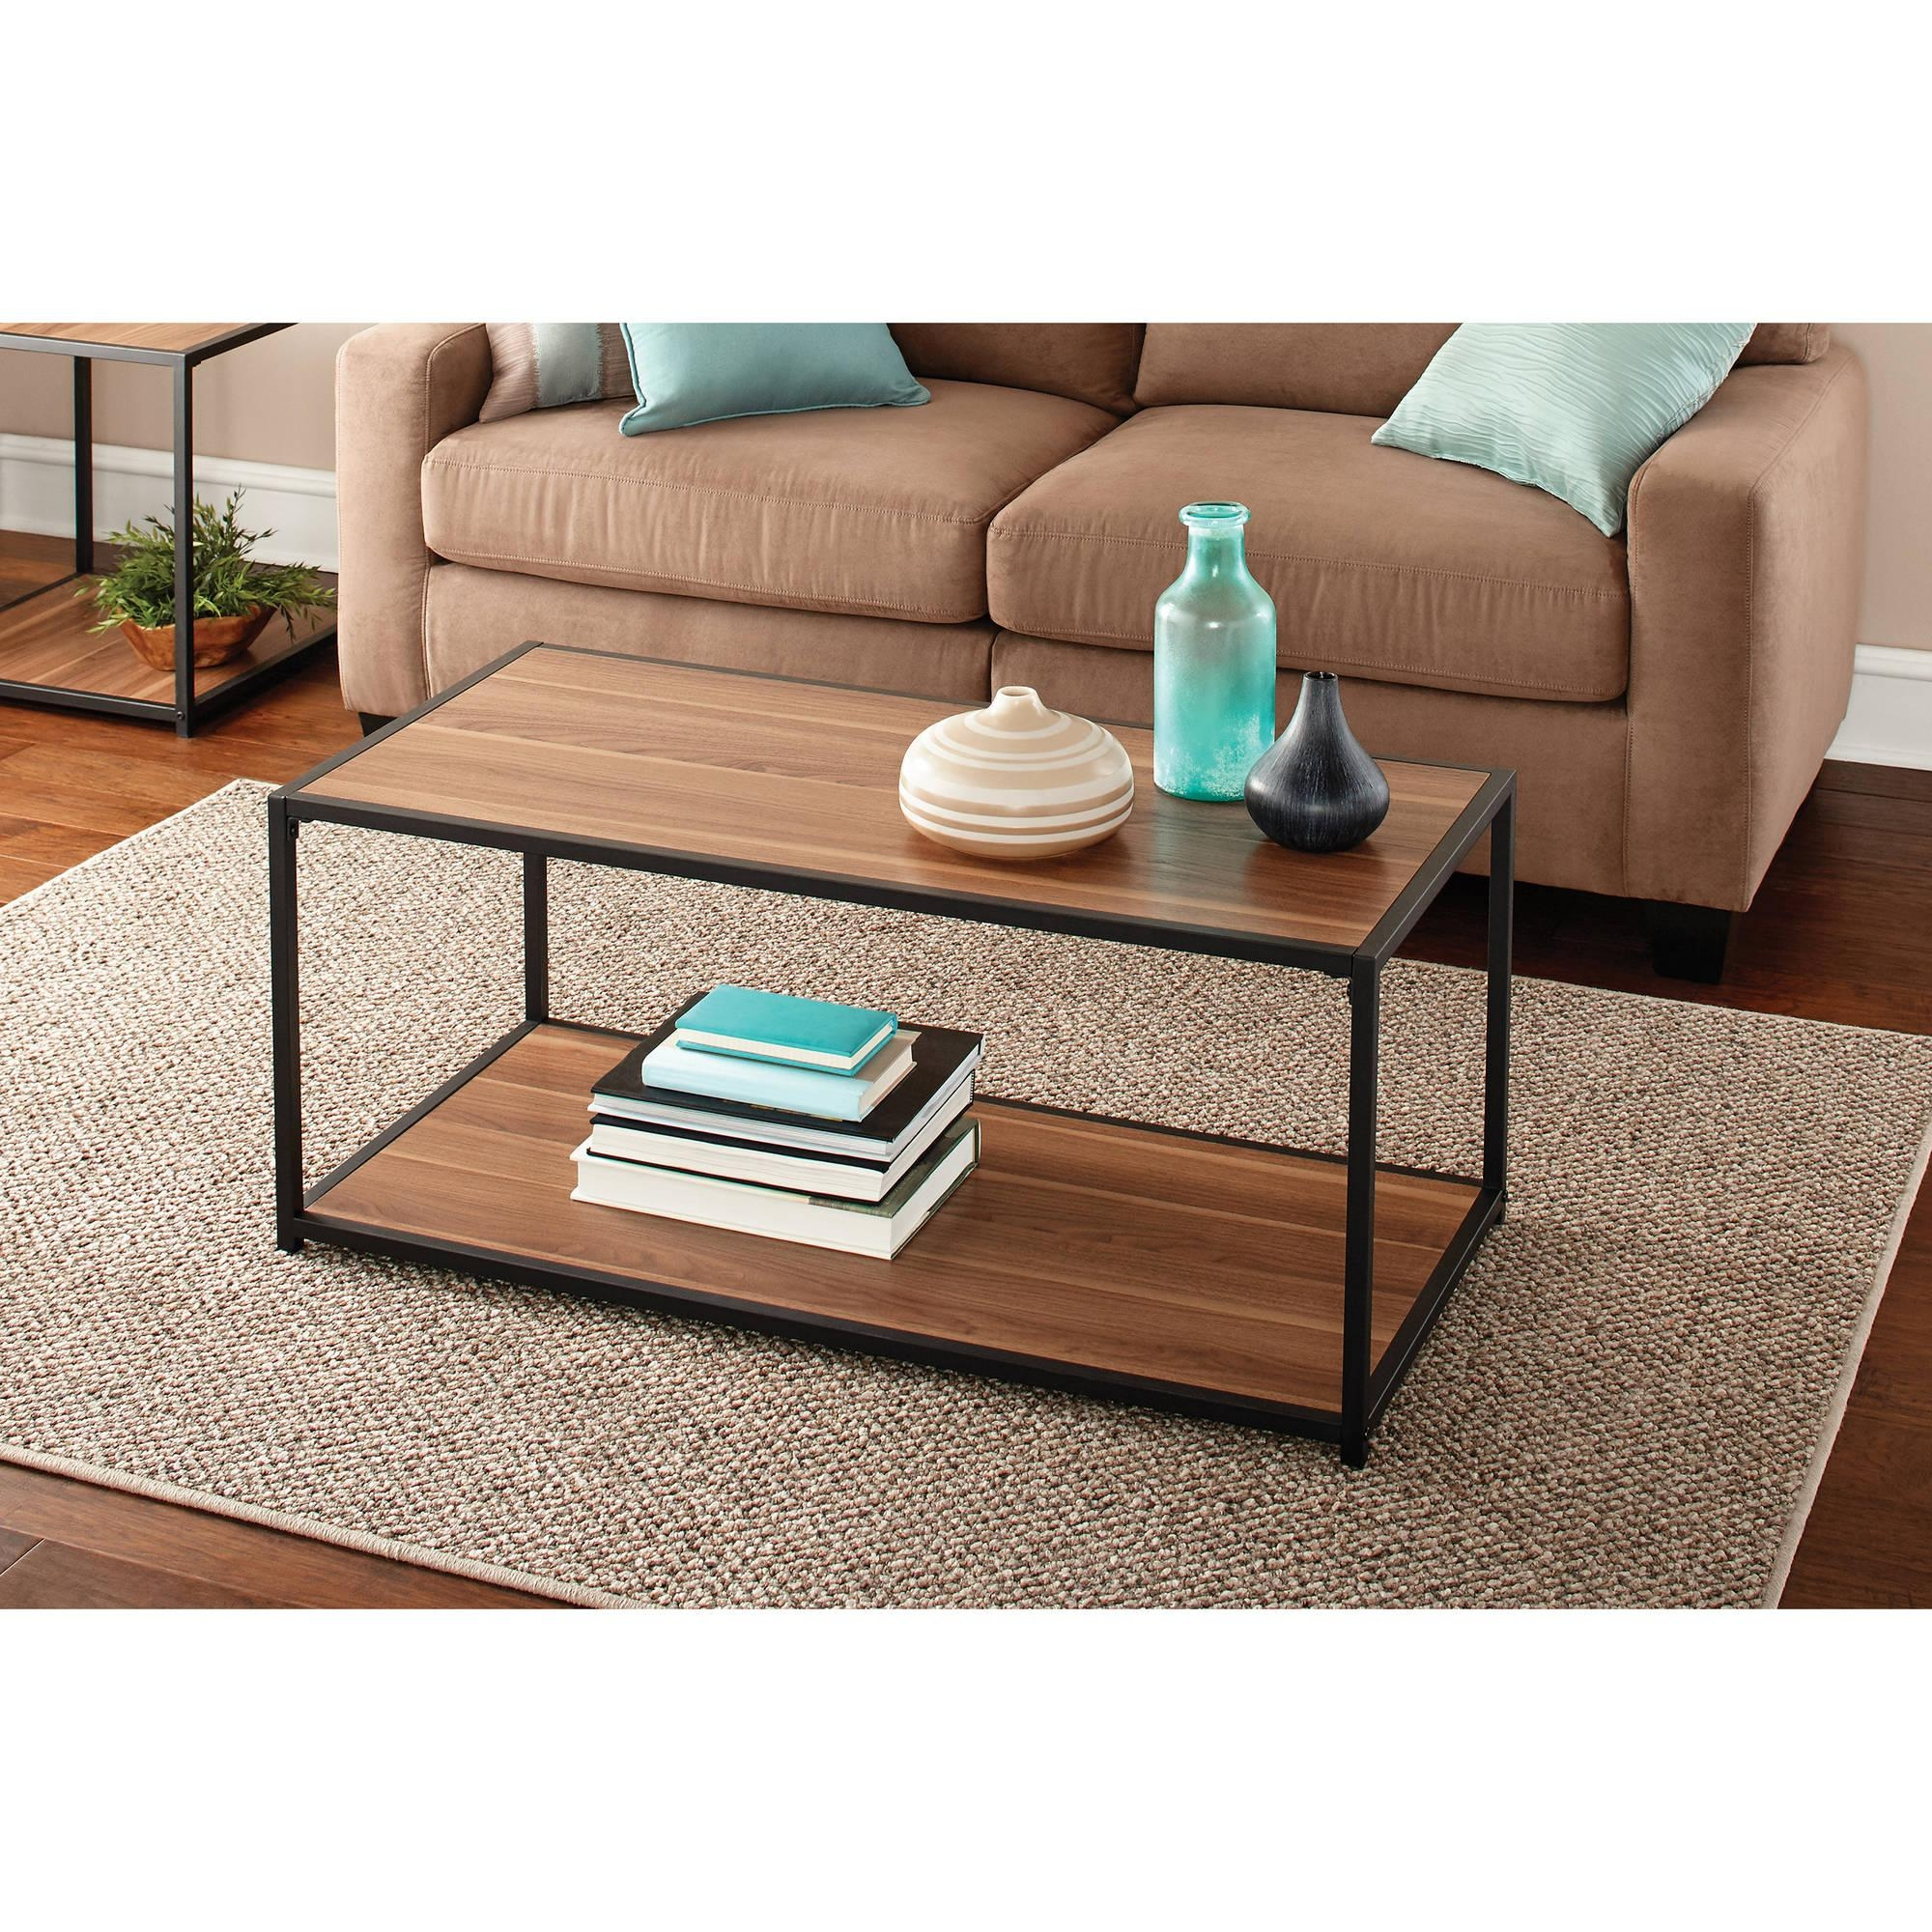 Mainstays Metro Coffee Table, Multiple Finishes – Walmart Intended For Mainstay Sofas (Image 15 of 20)